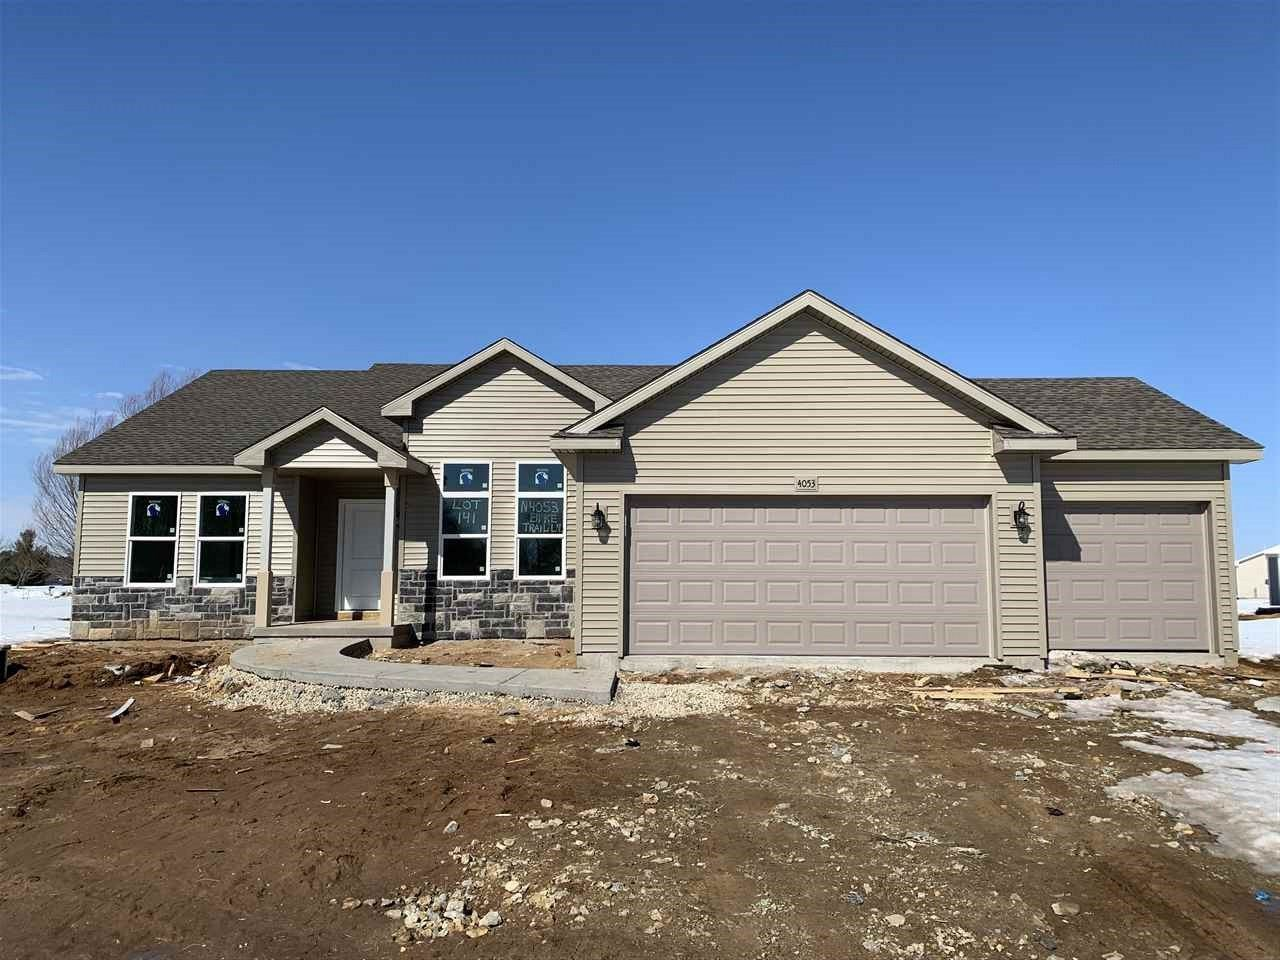 f_1903525 New Construction Homes in Brodhead